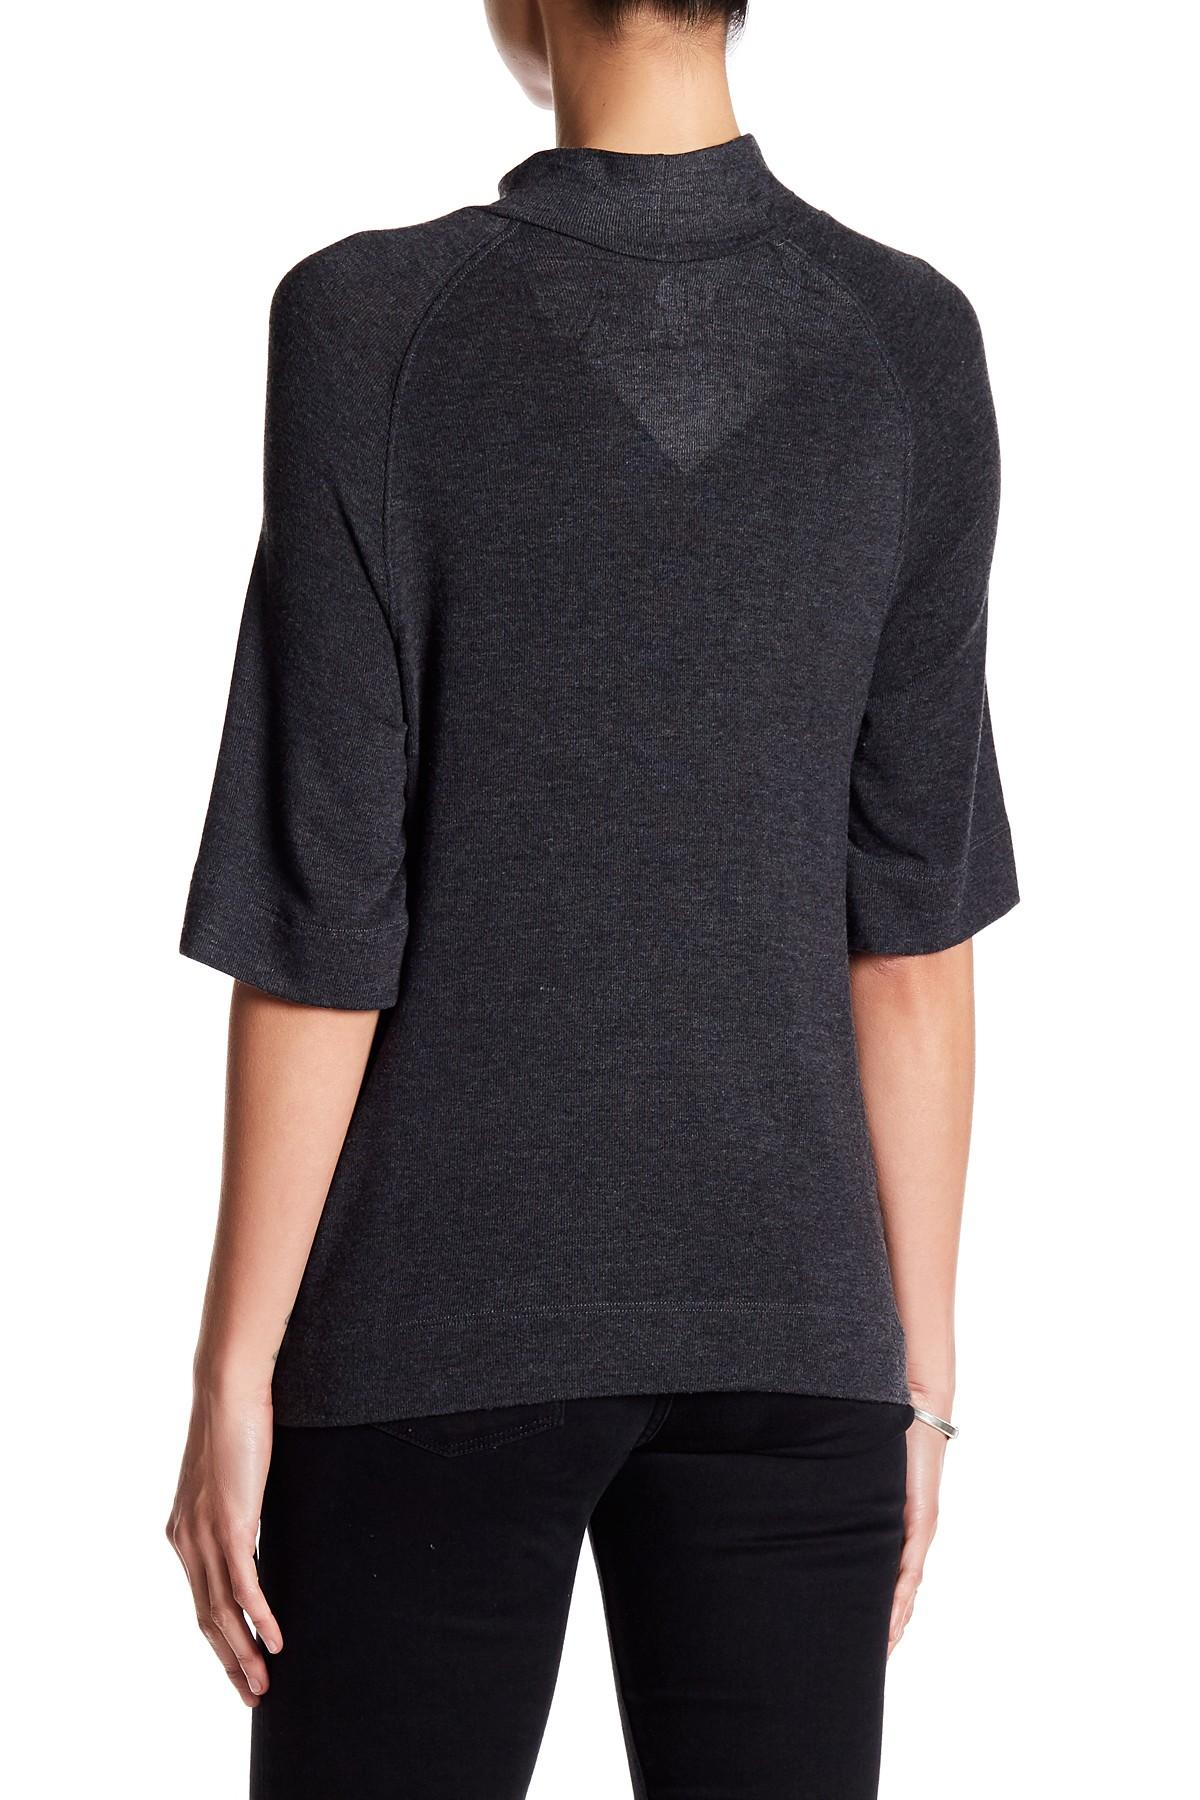 Go couture elbow length sleeve dye sweater lyst for Couture garments